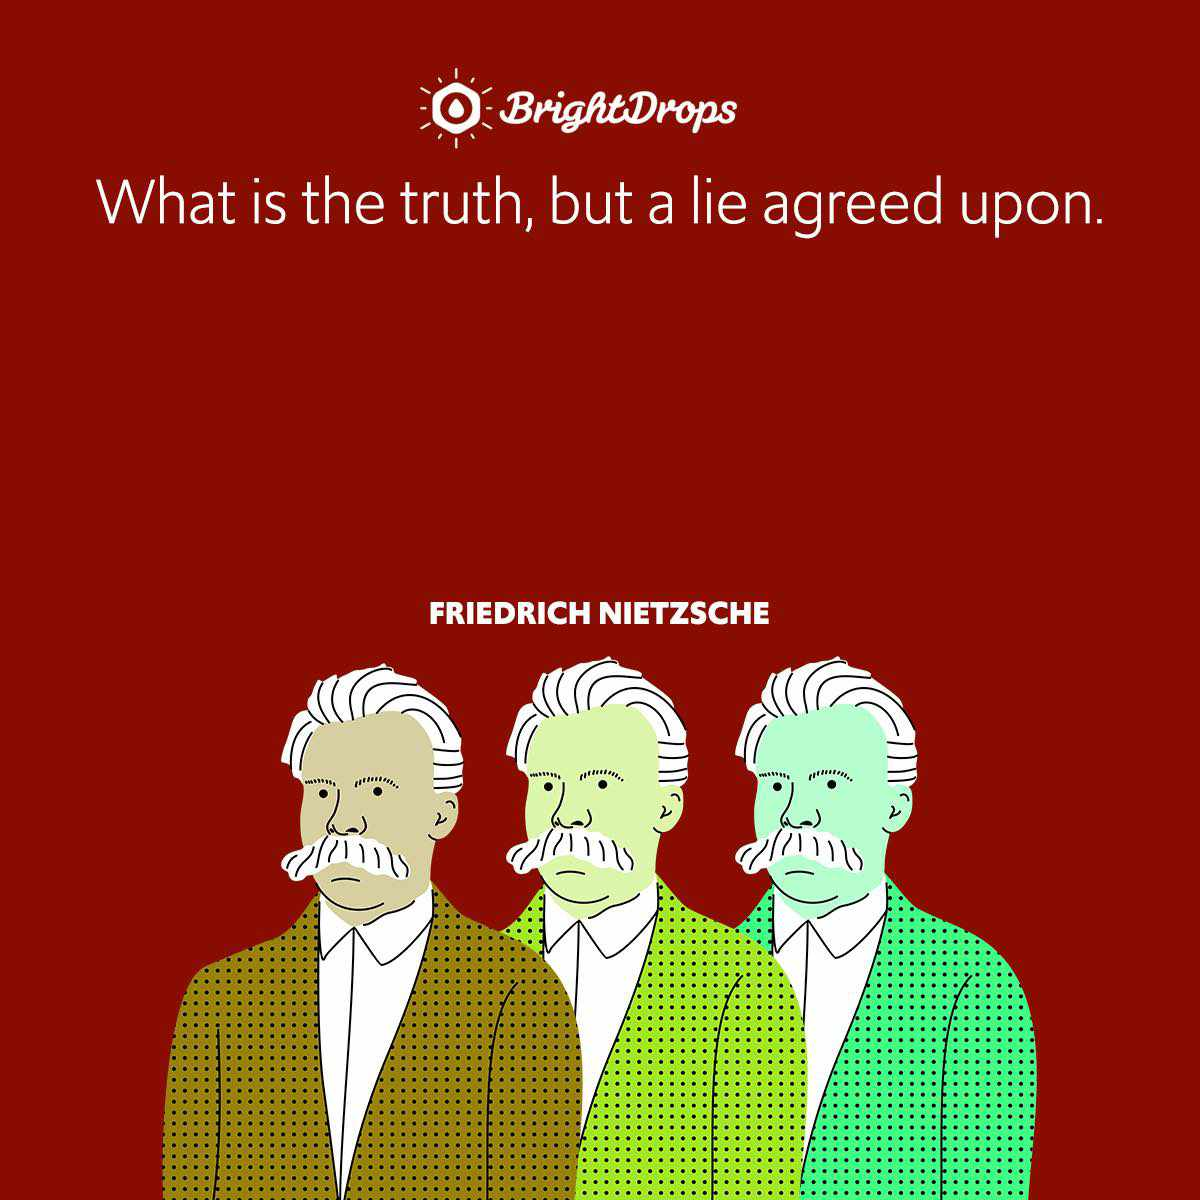 What is the truth, but a lie agreed upon.